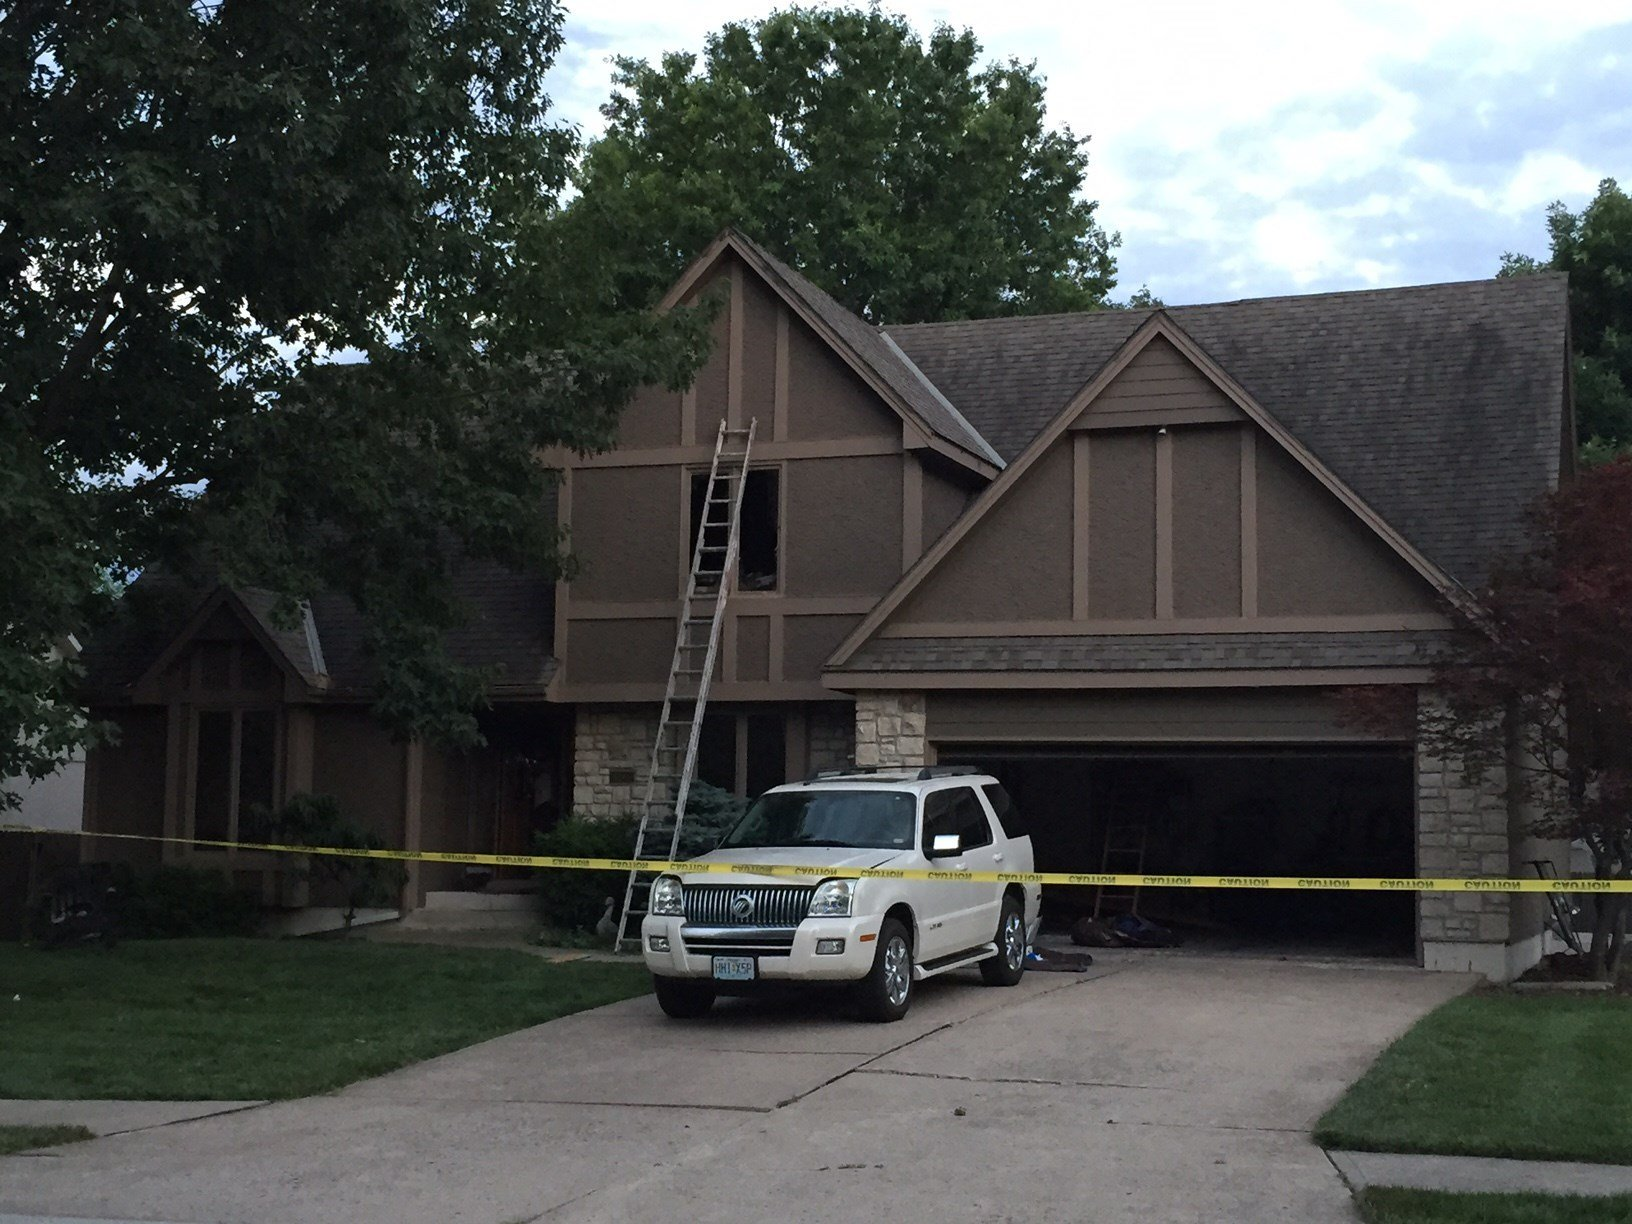 File photo. This is what the house looked like after the first fire in June. (KCTV)